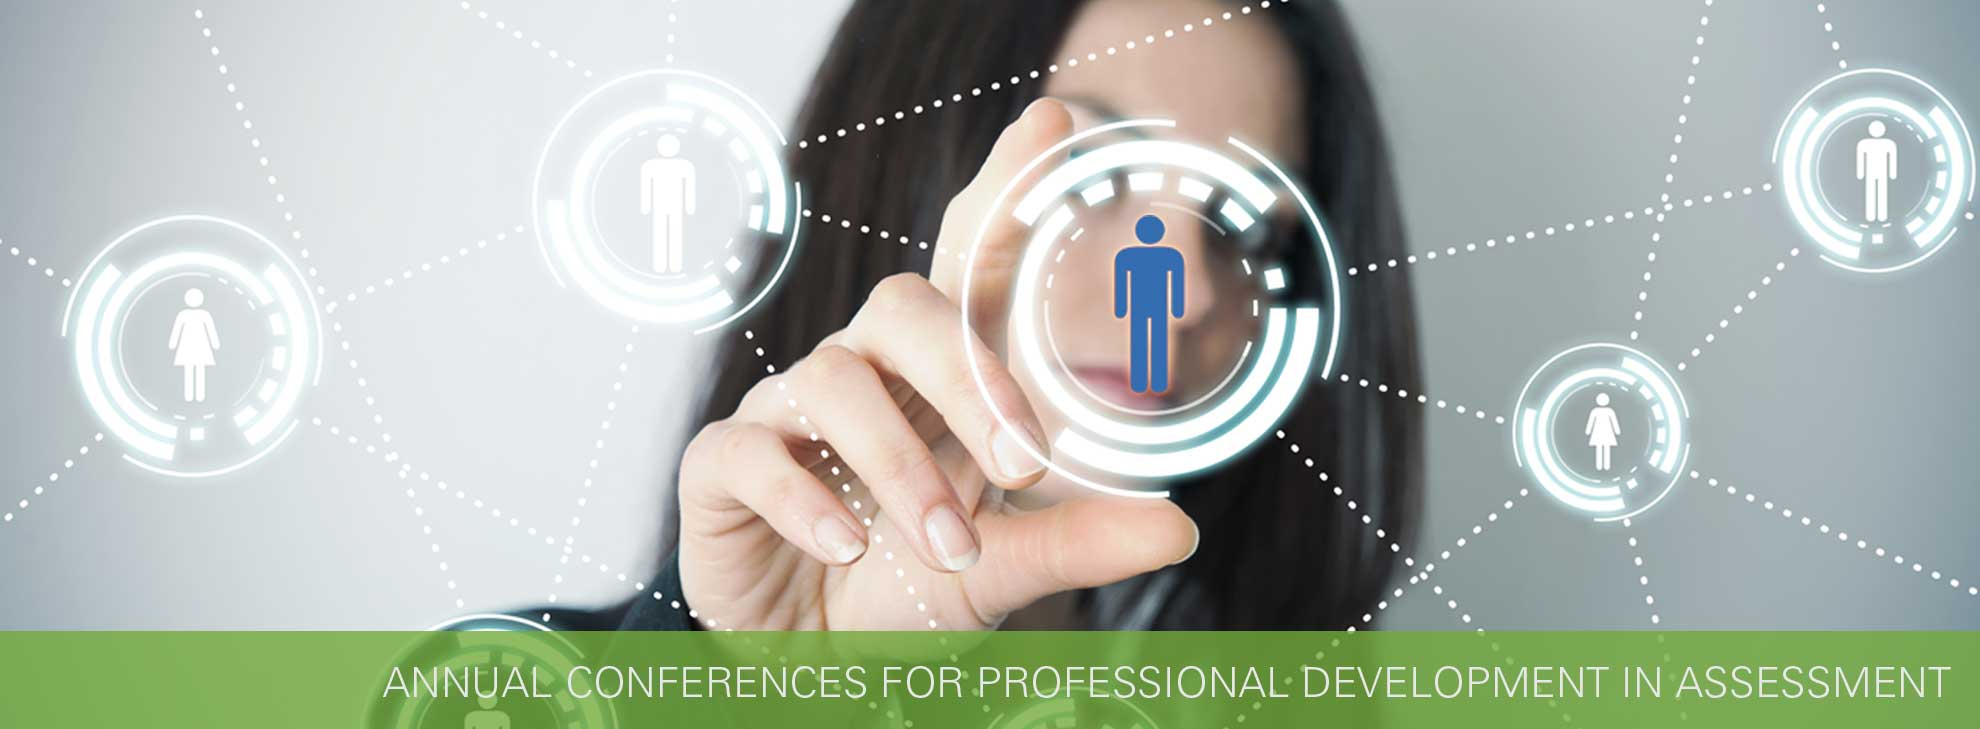 Annual Conferences for Professional Development in Assessment